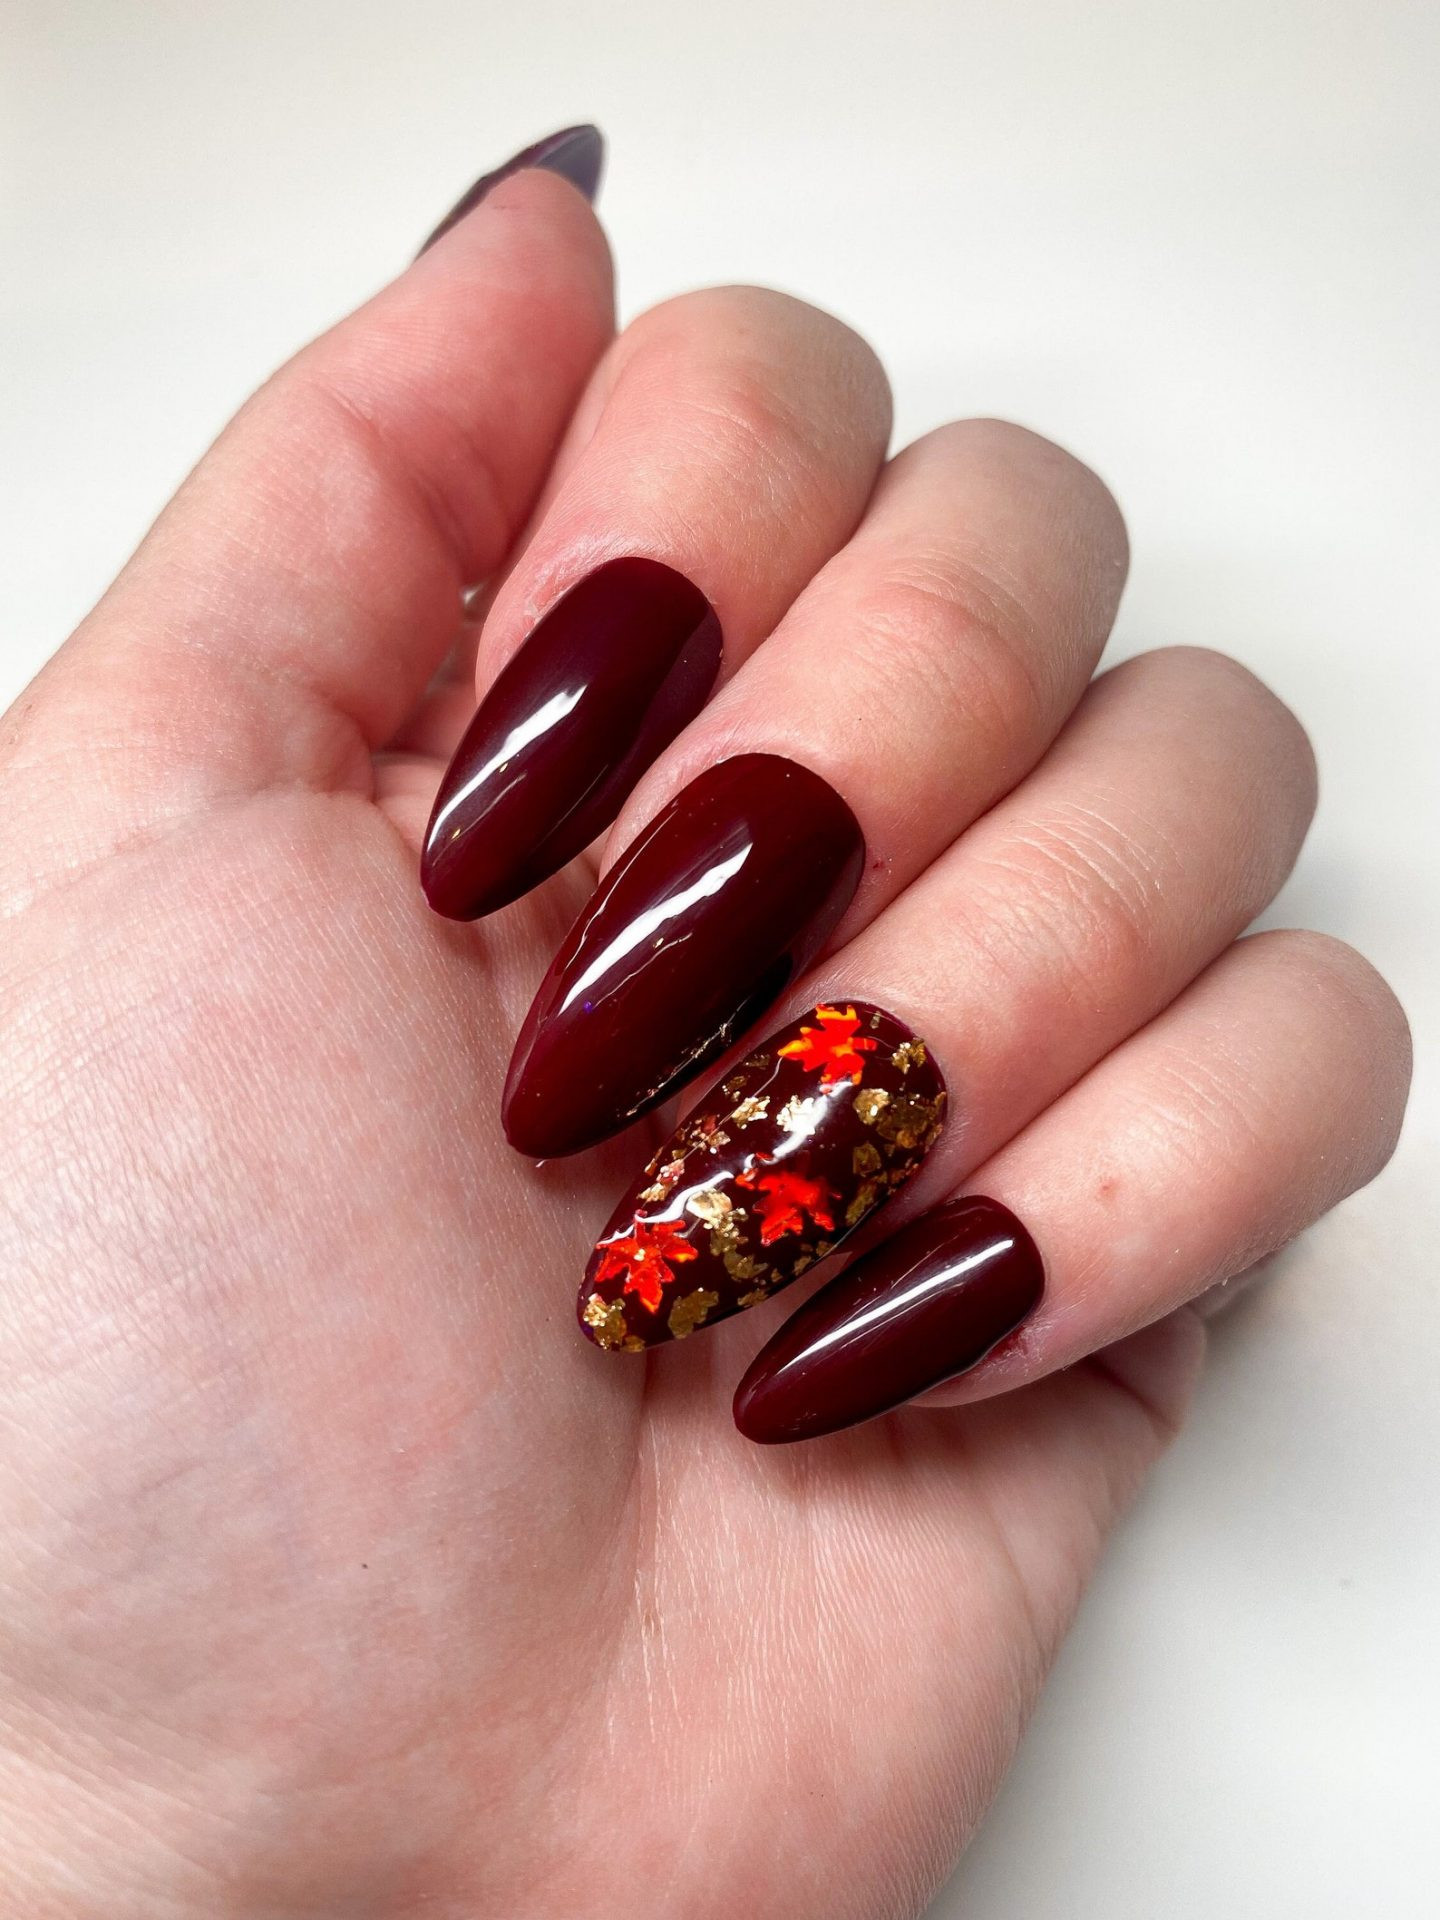 Burgundy Thanksgiving nails with fall foliage